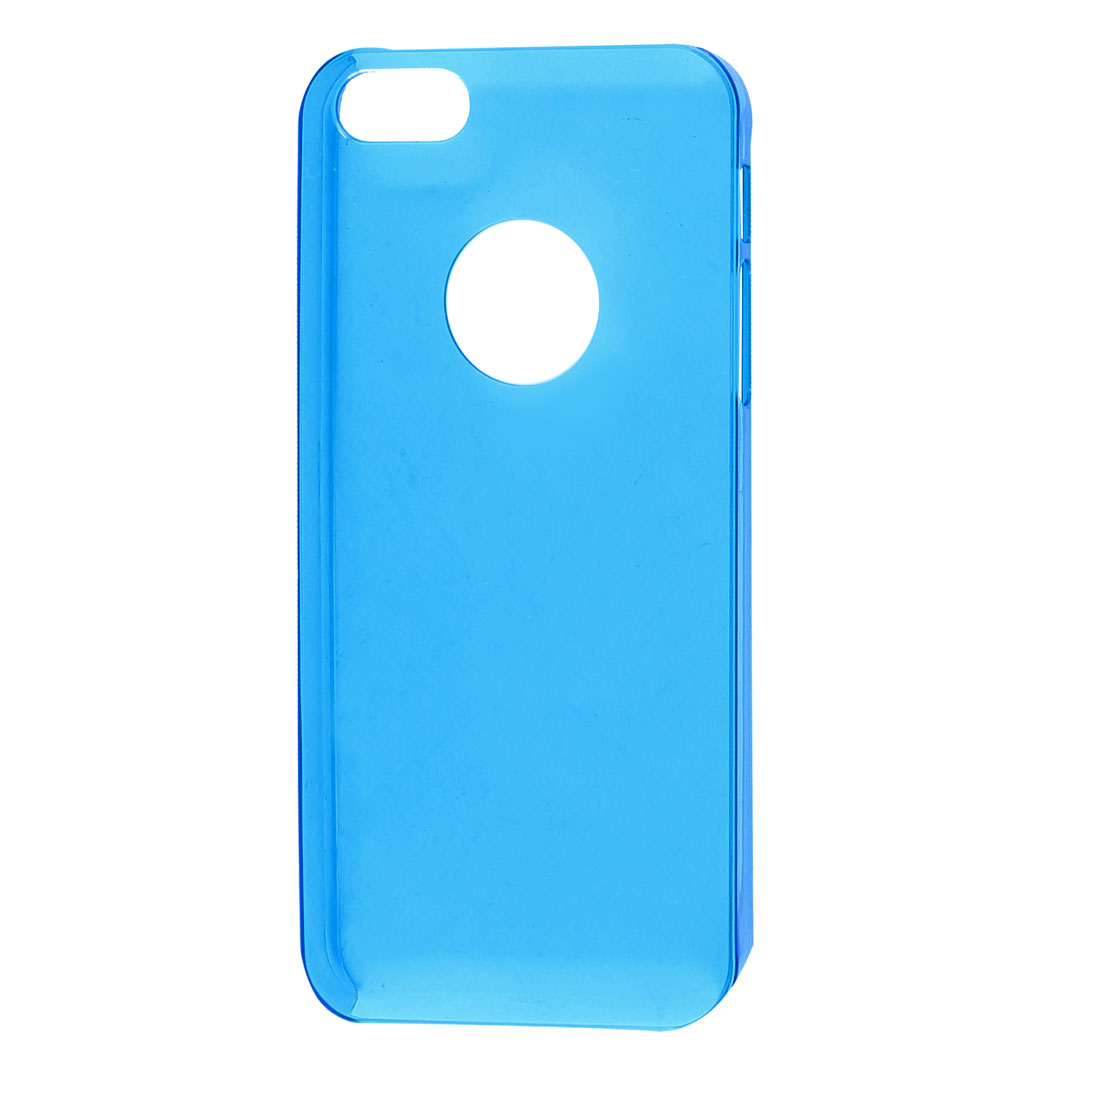 Solid Blue Plastic Protector Case Cover for iPhone 5 5G